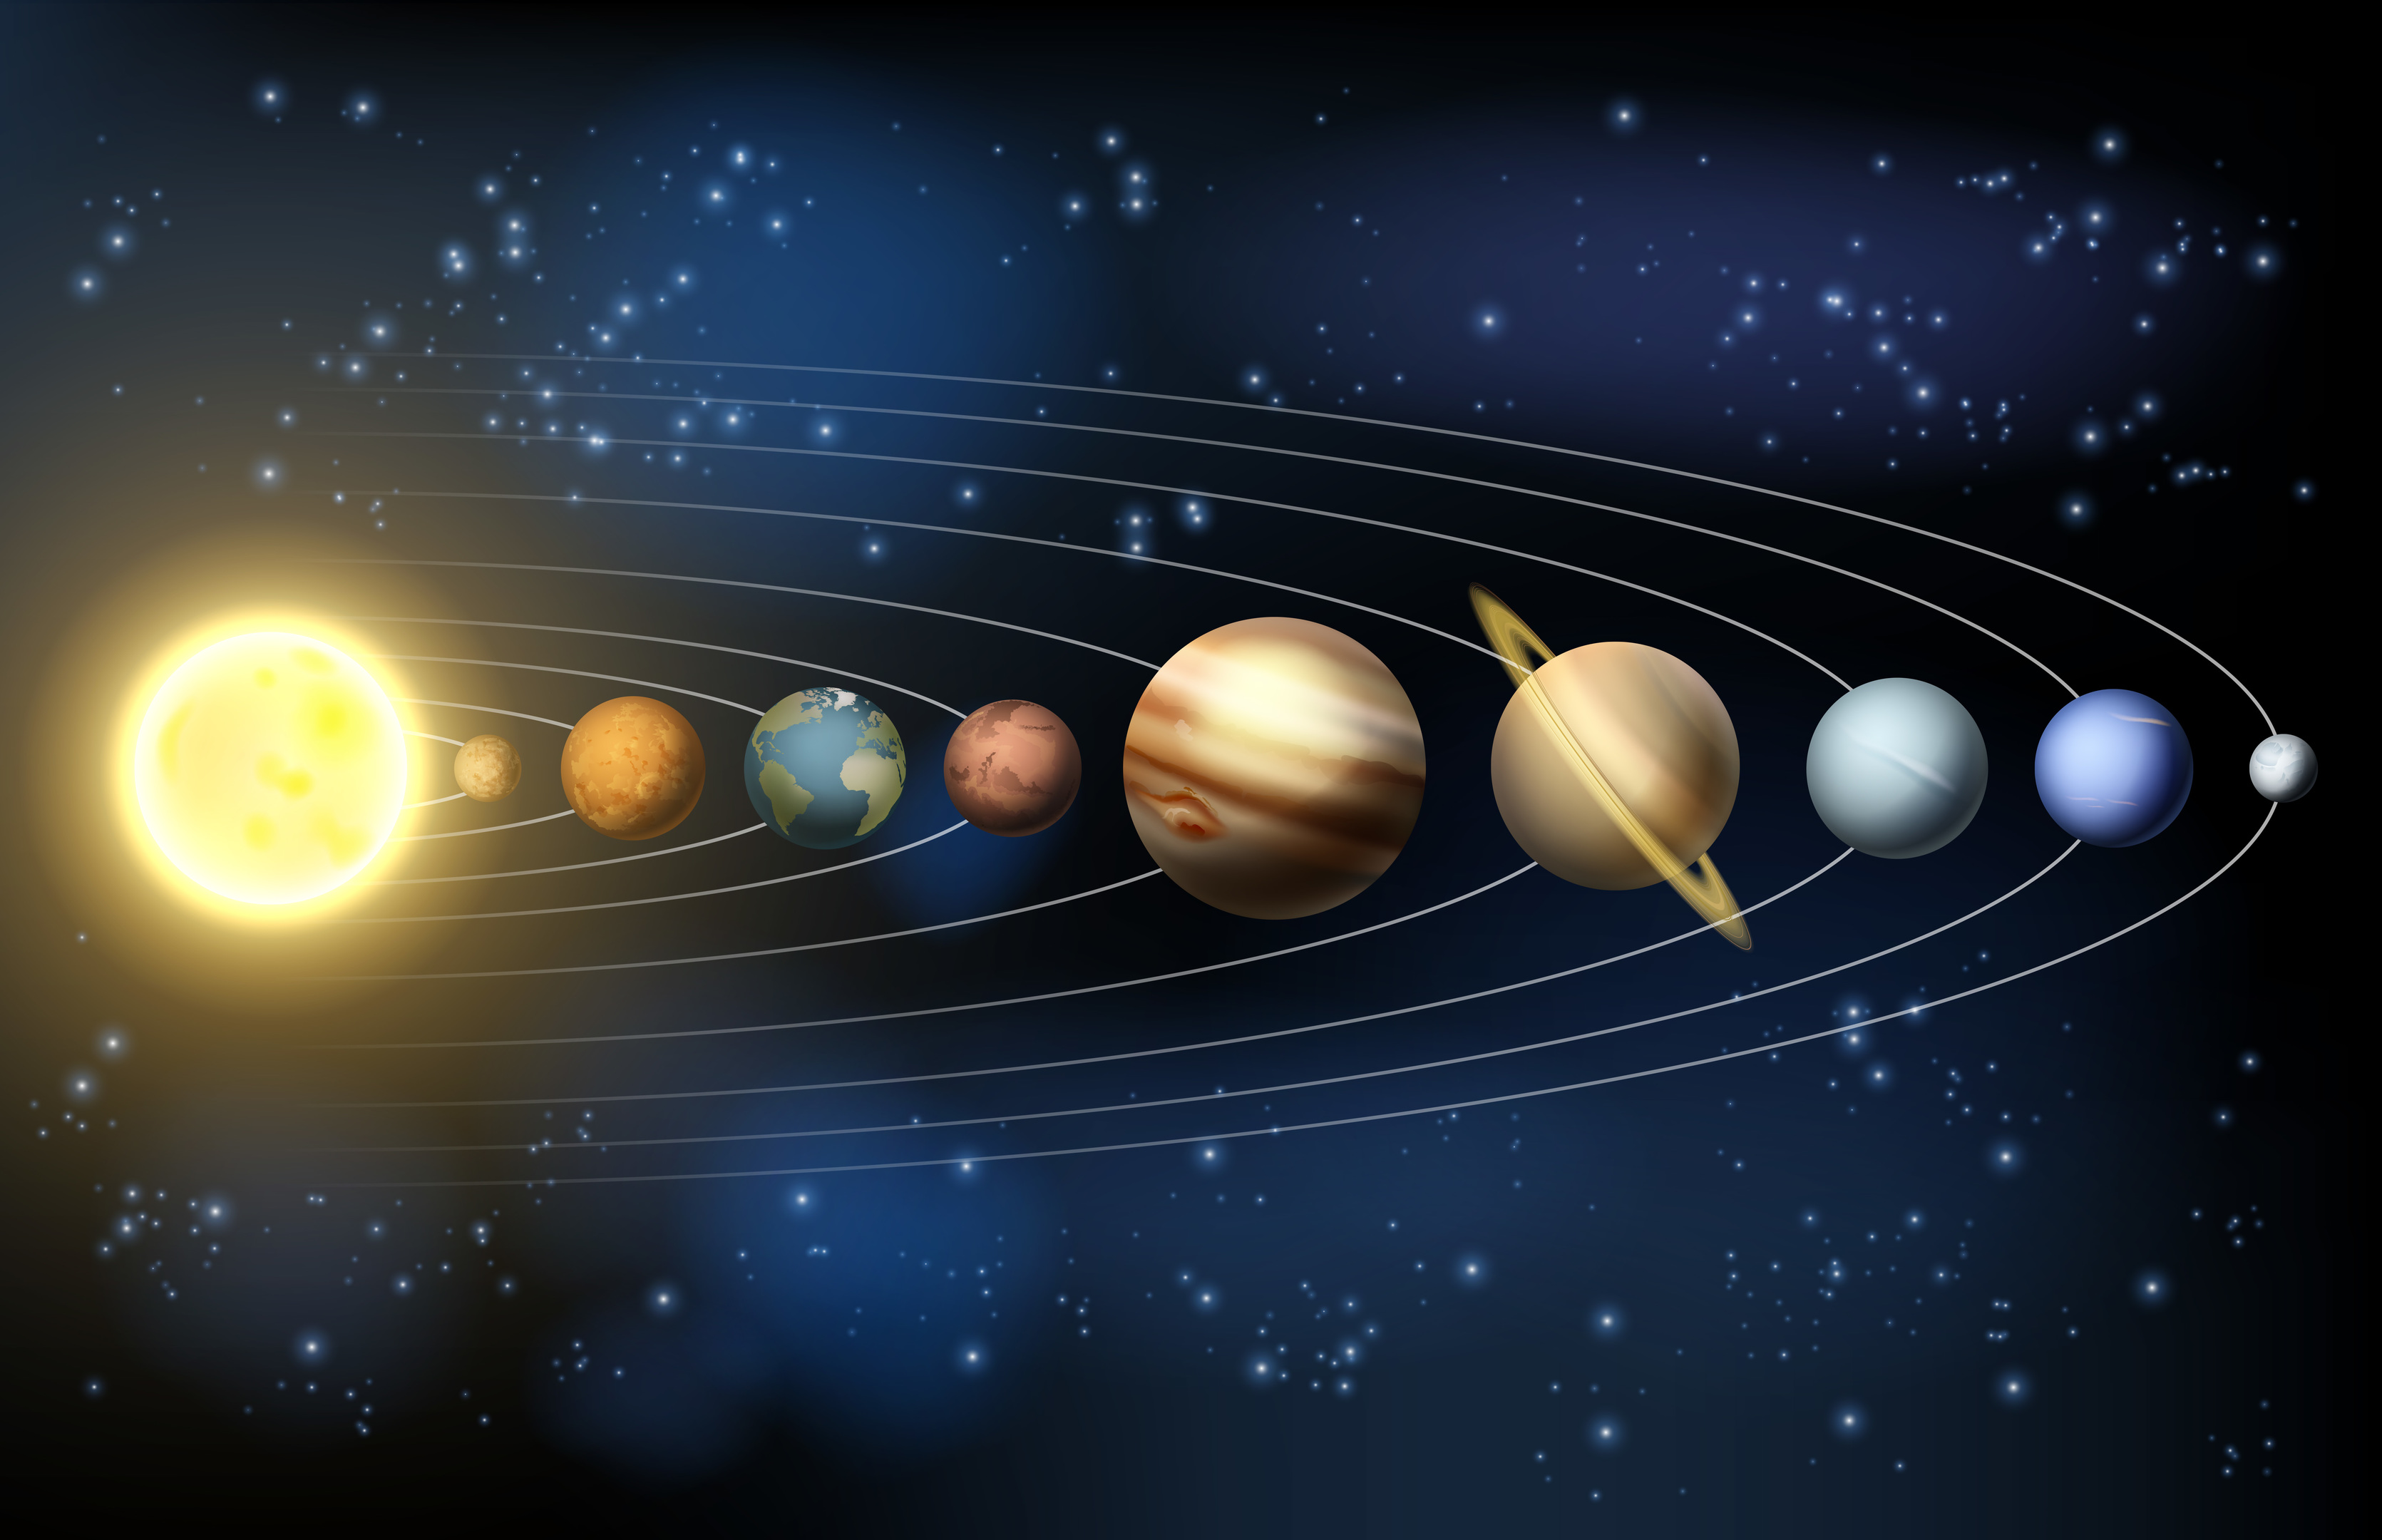 Planets of the Solar system (Christos Georghiou)